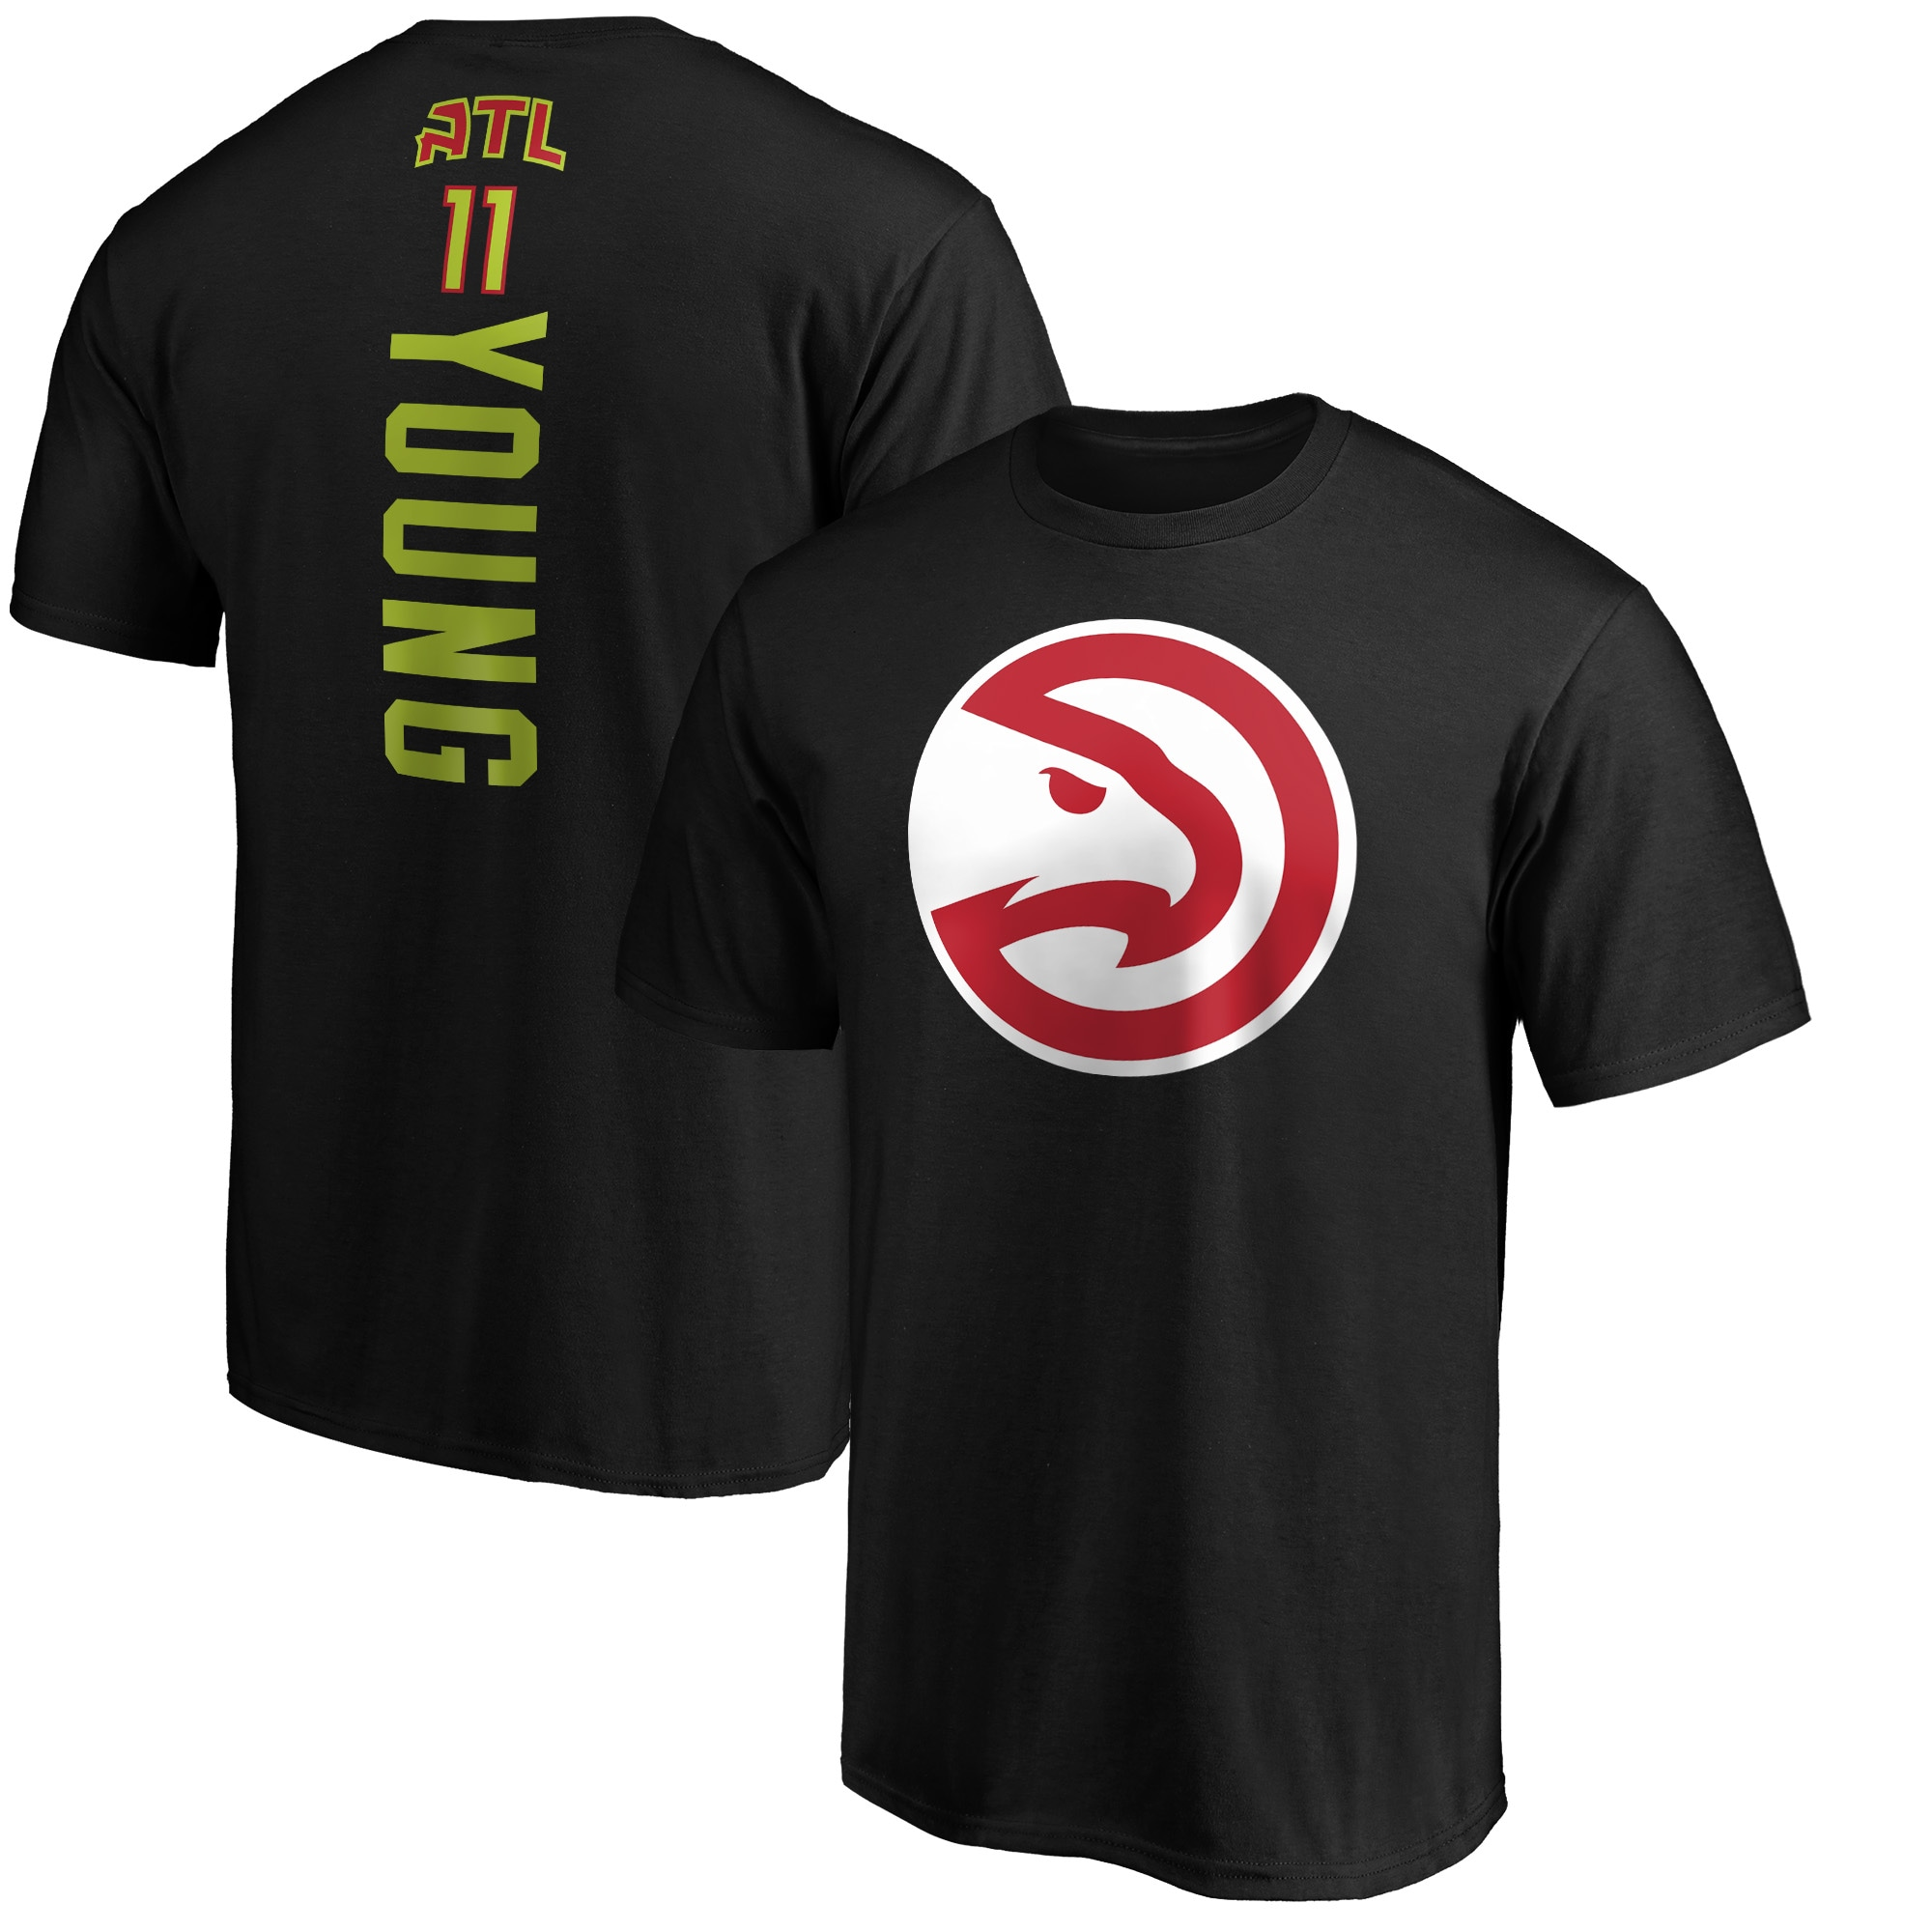 Trae Young Atlanta Hawks Fanatics Branded Big & Tall Playmaker Name & Number Team T-Shirt - Black